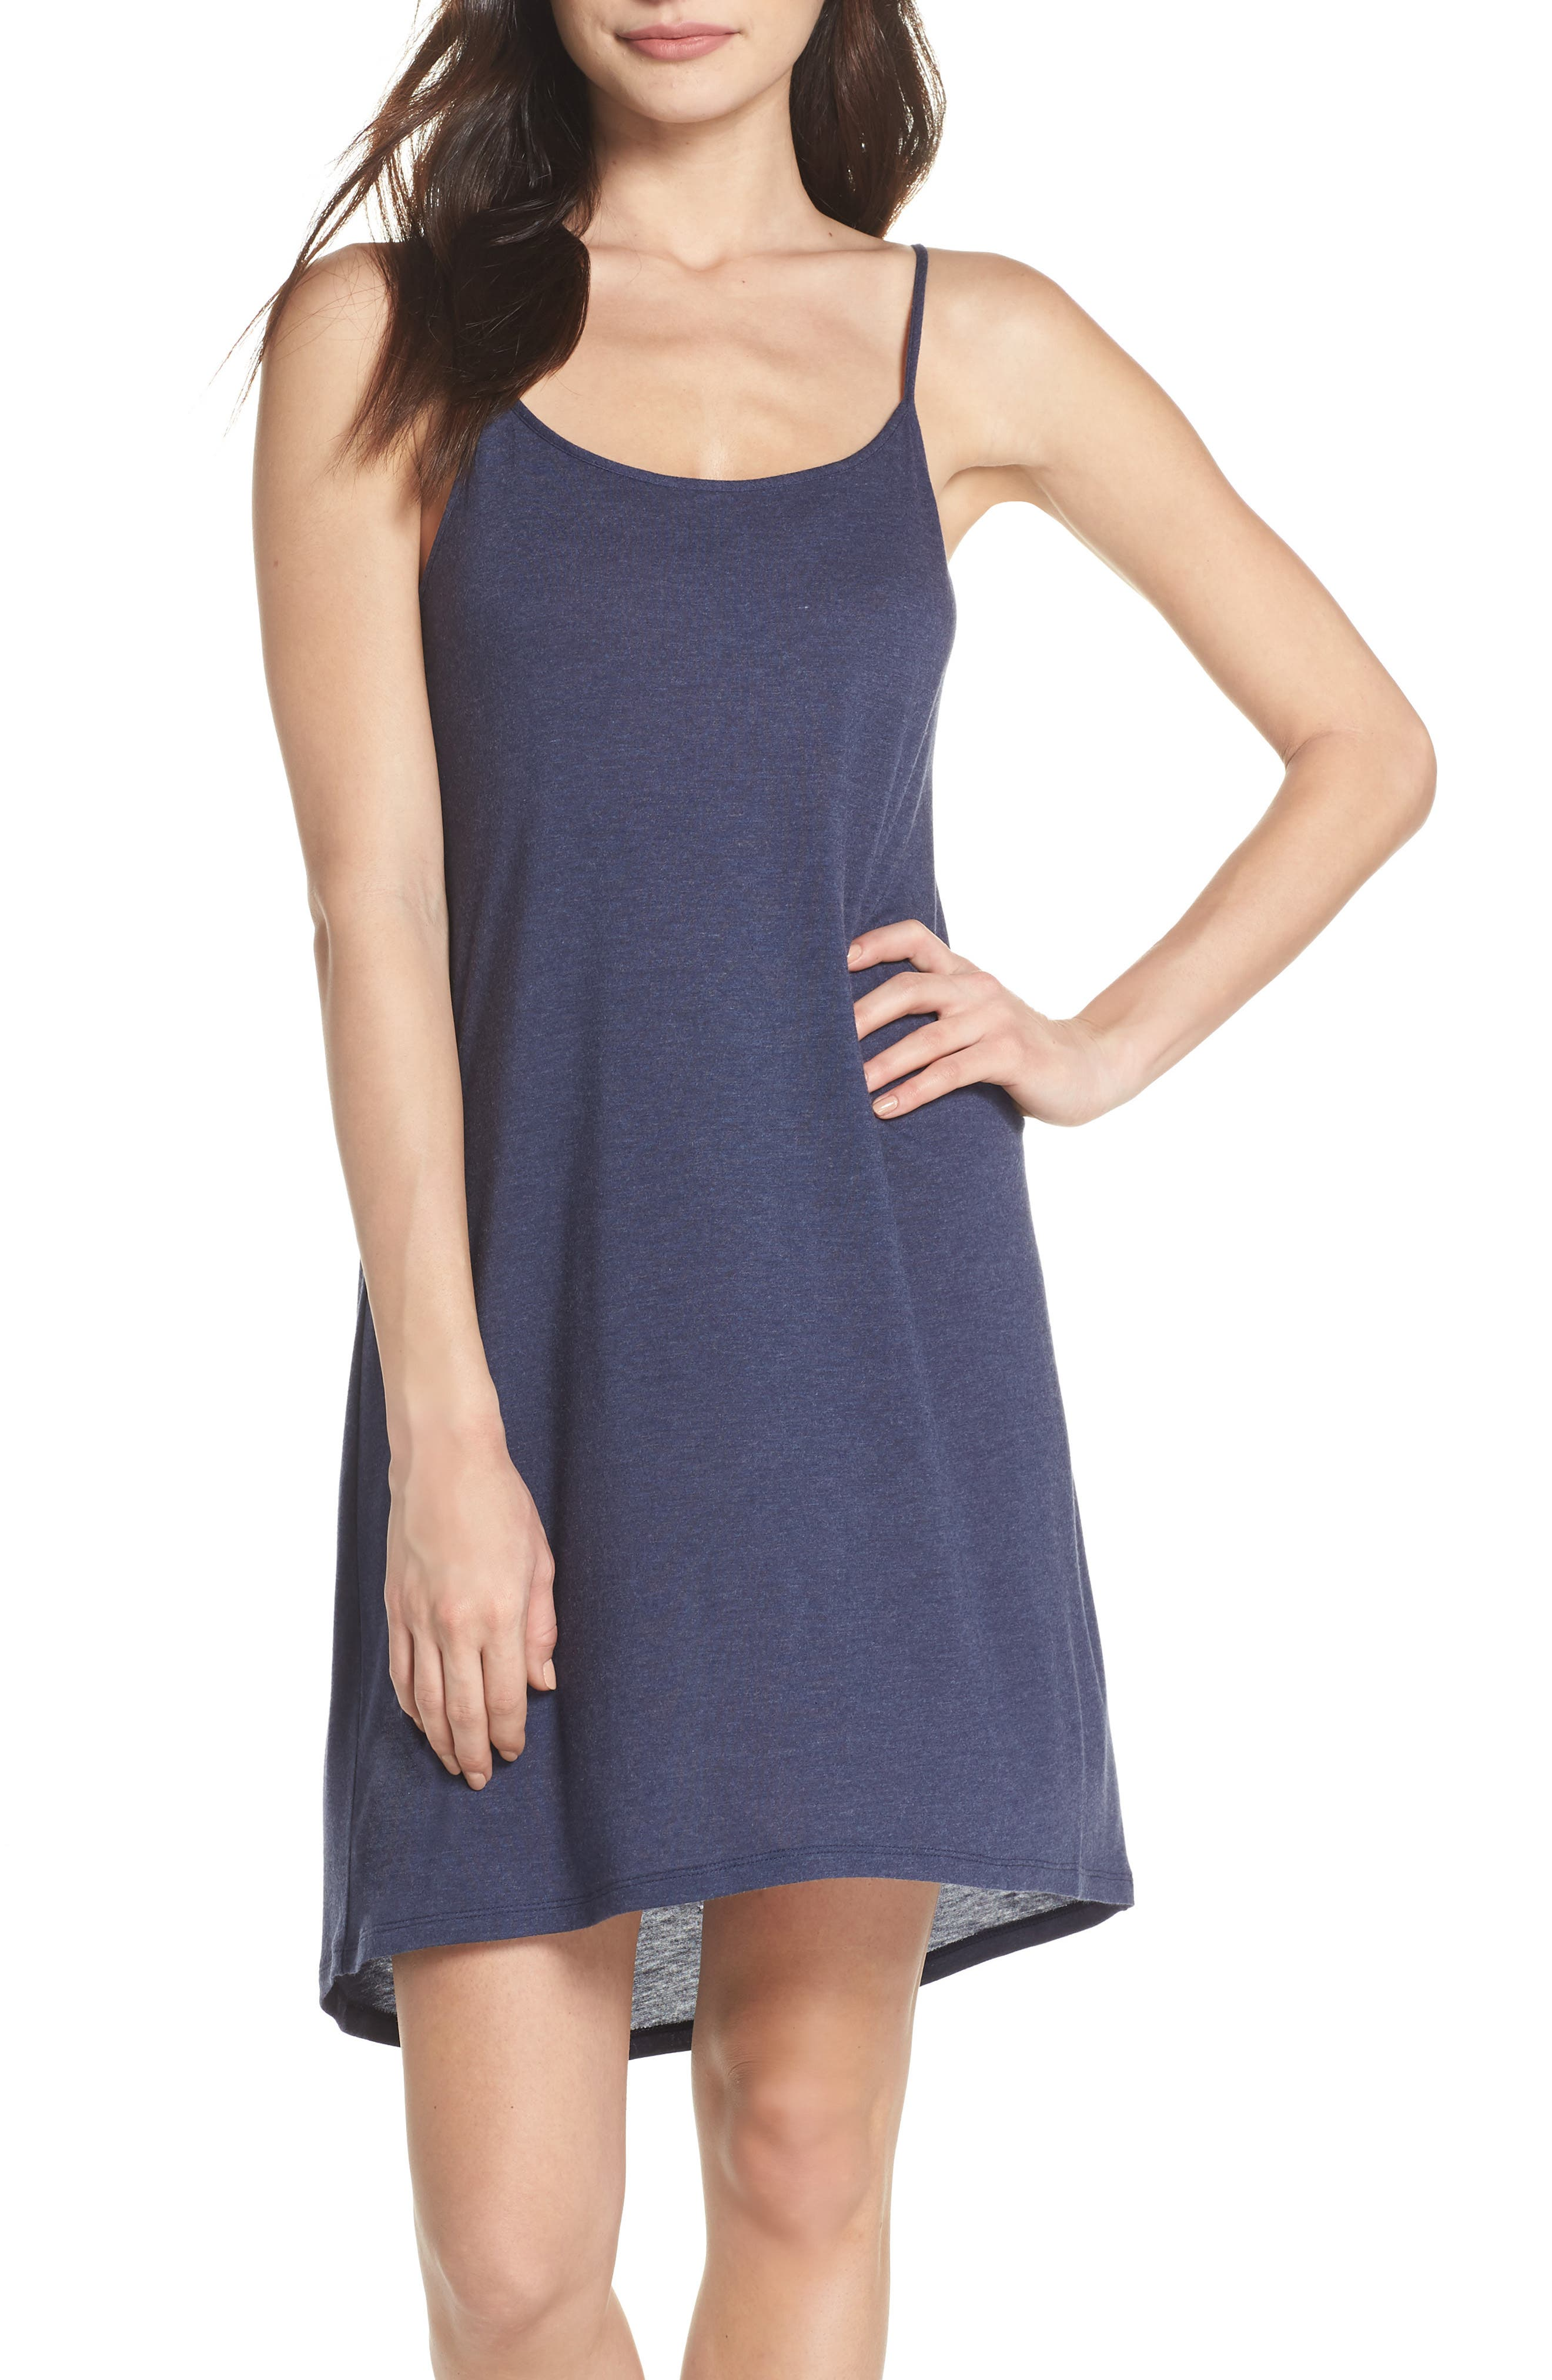 Heather Tees Chemise in Hnb Ht. Night Blue